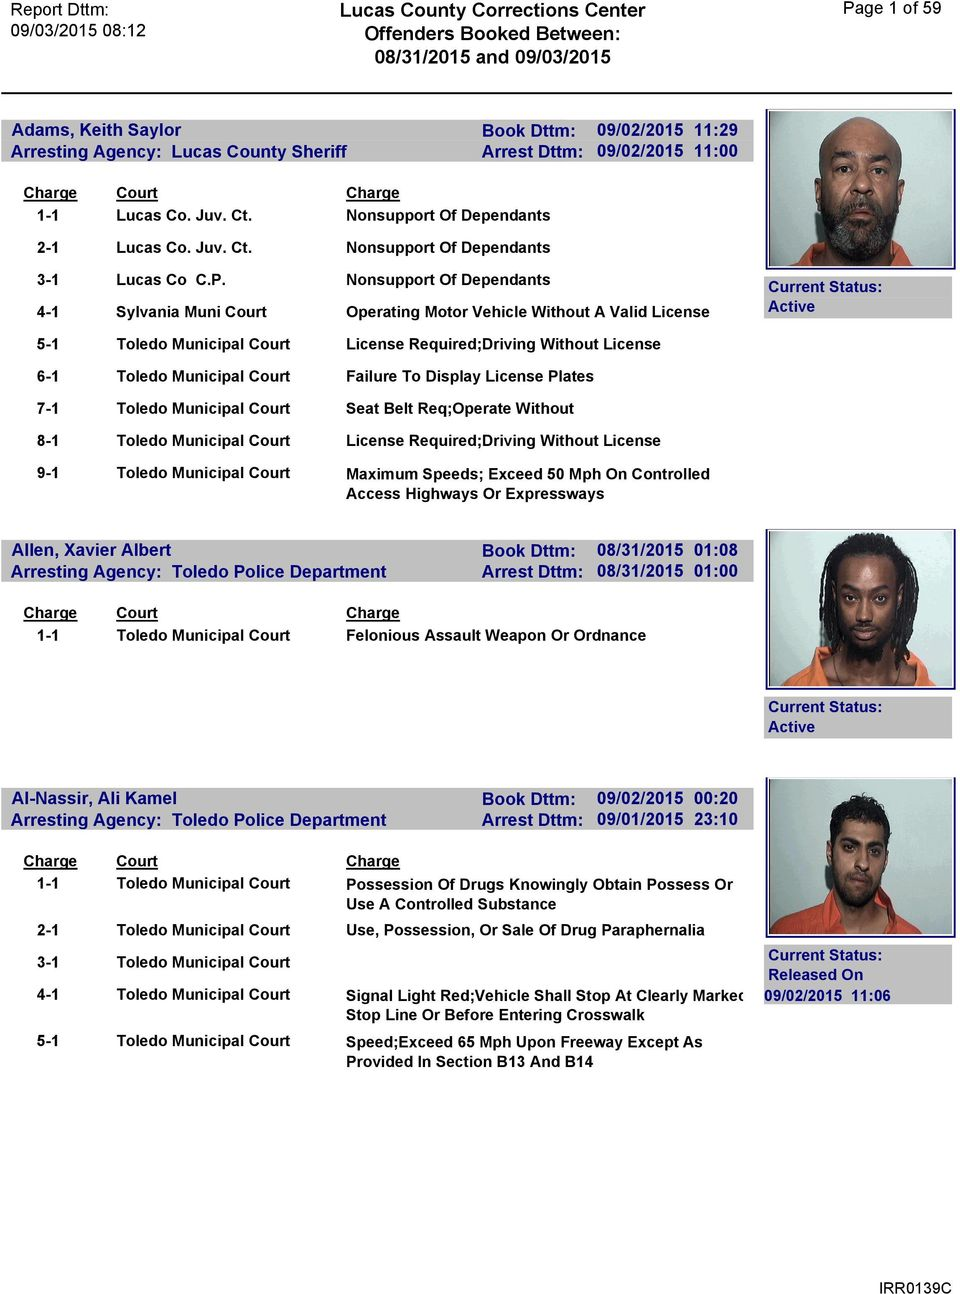 Lucas County Corrections Center Offenders Booked Between: 08